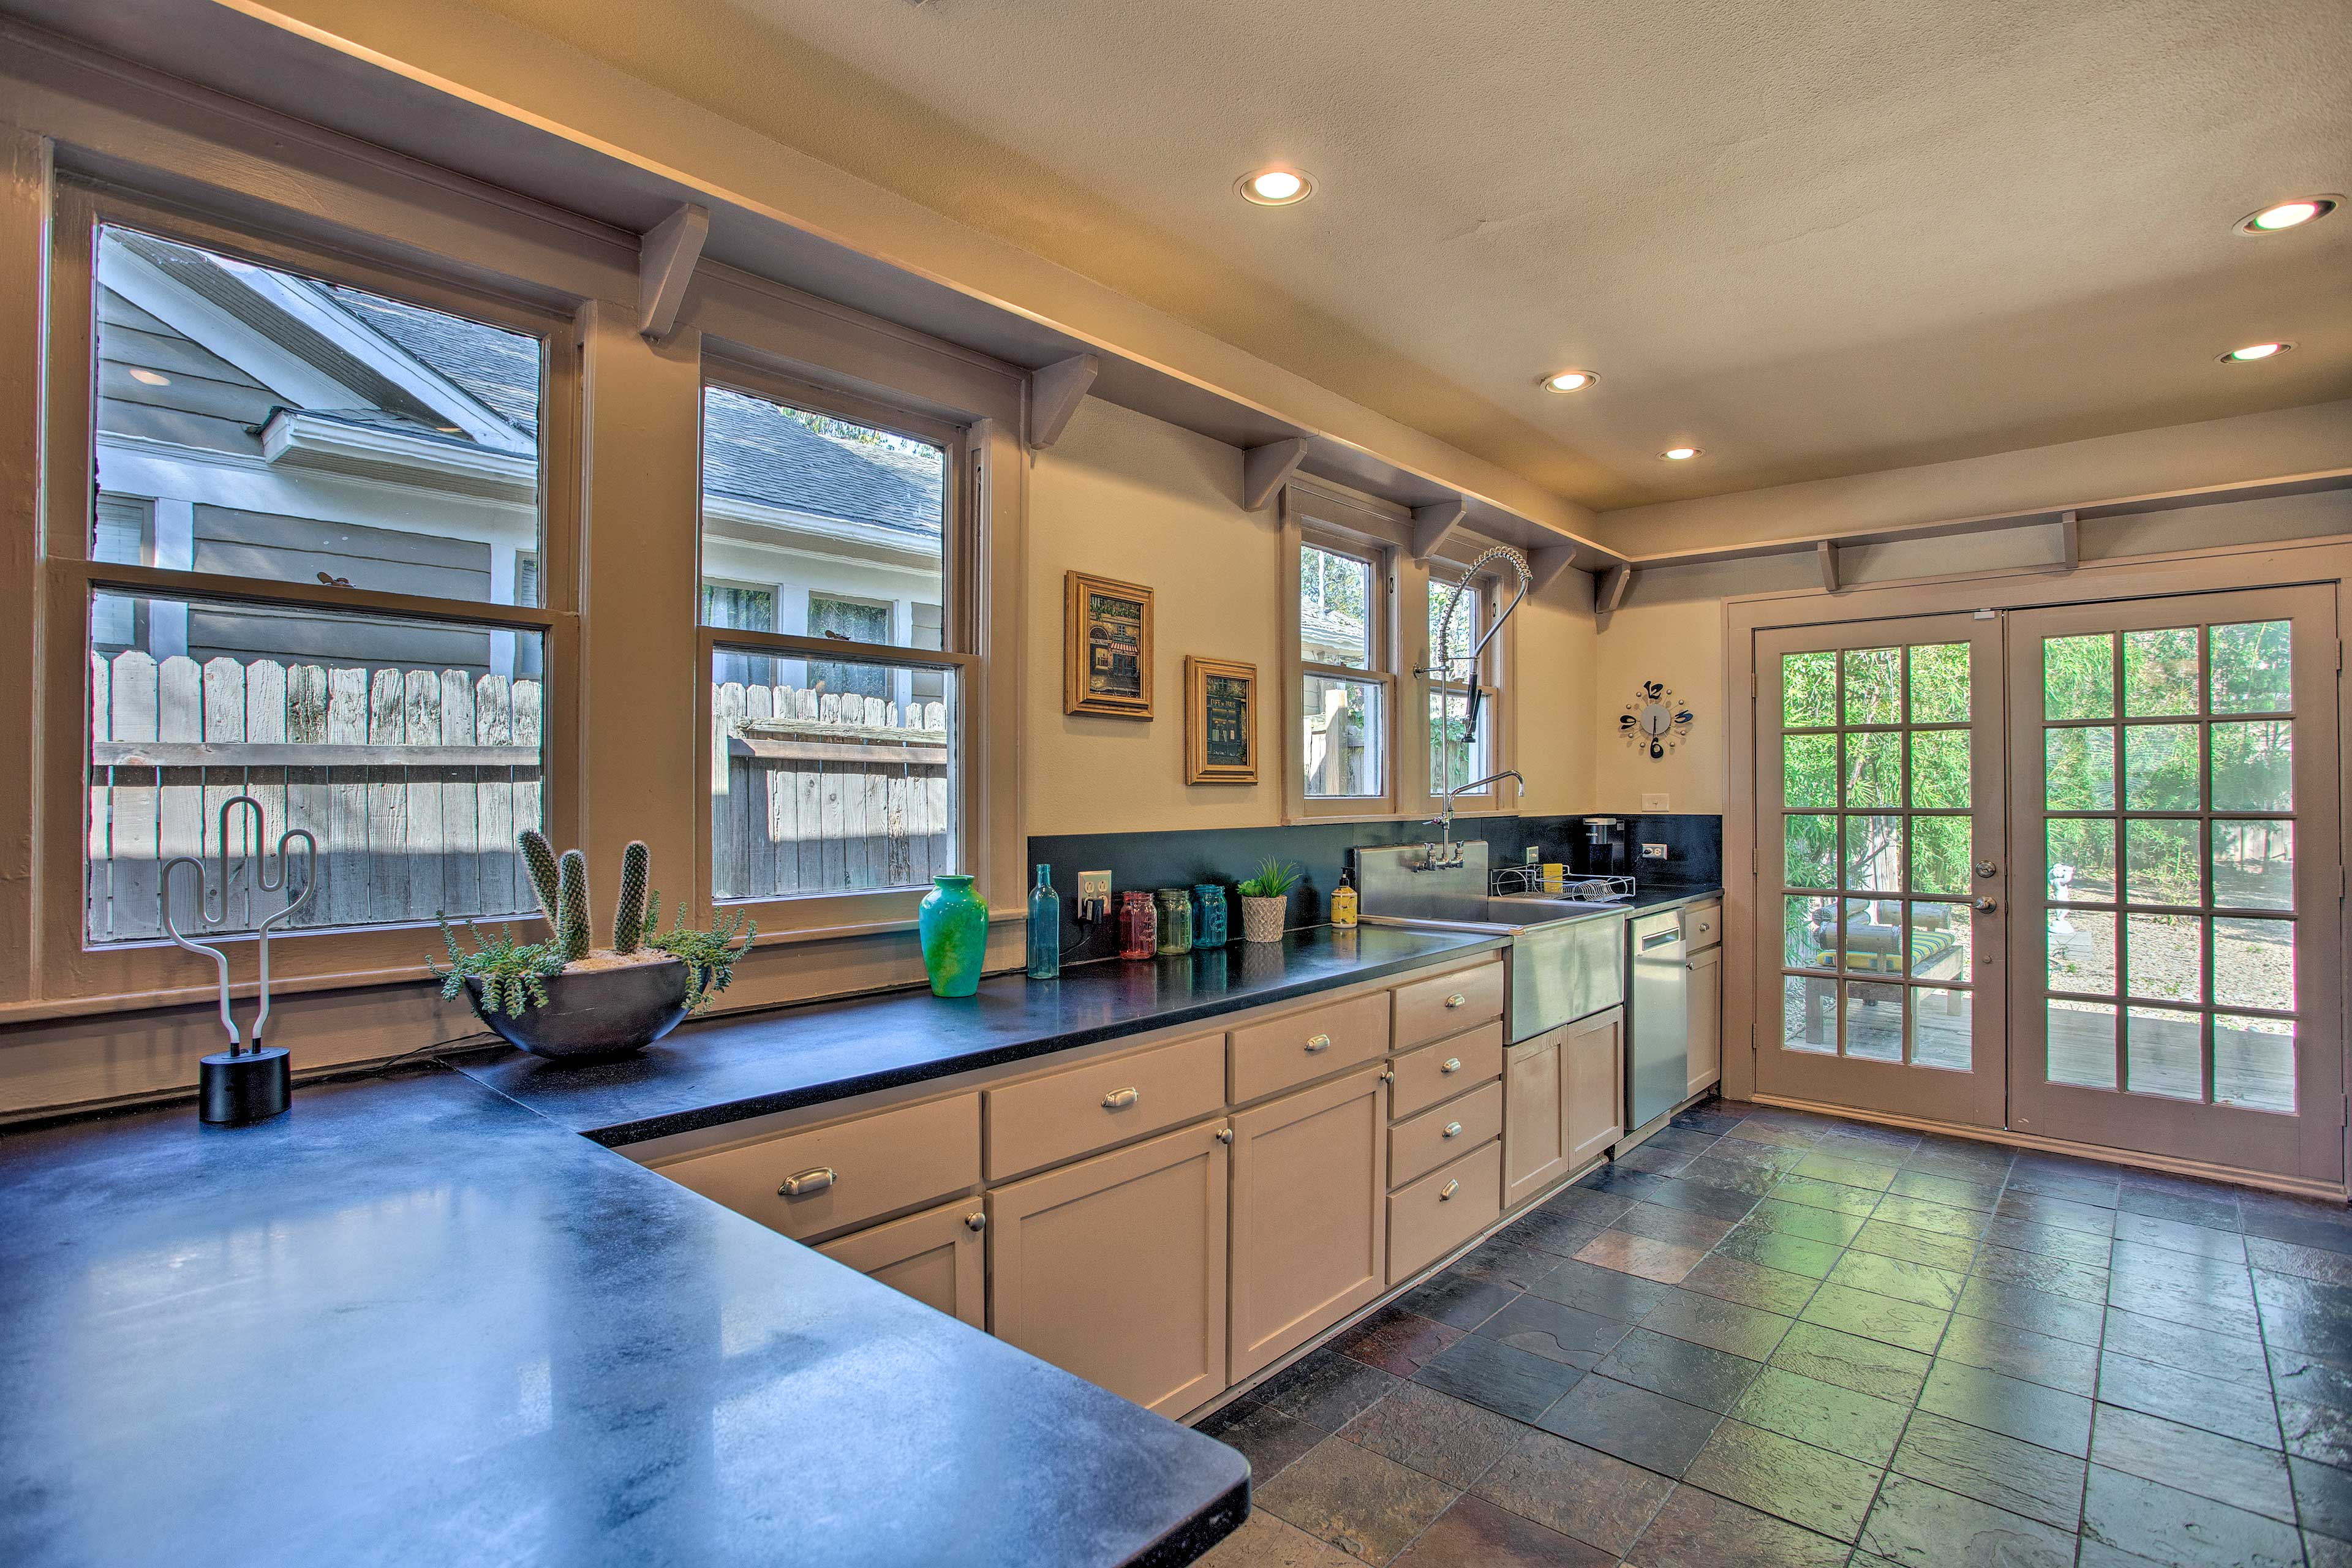 The kitchen comes with commercial-grade appliances.